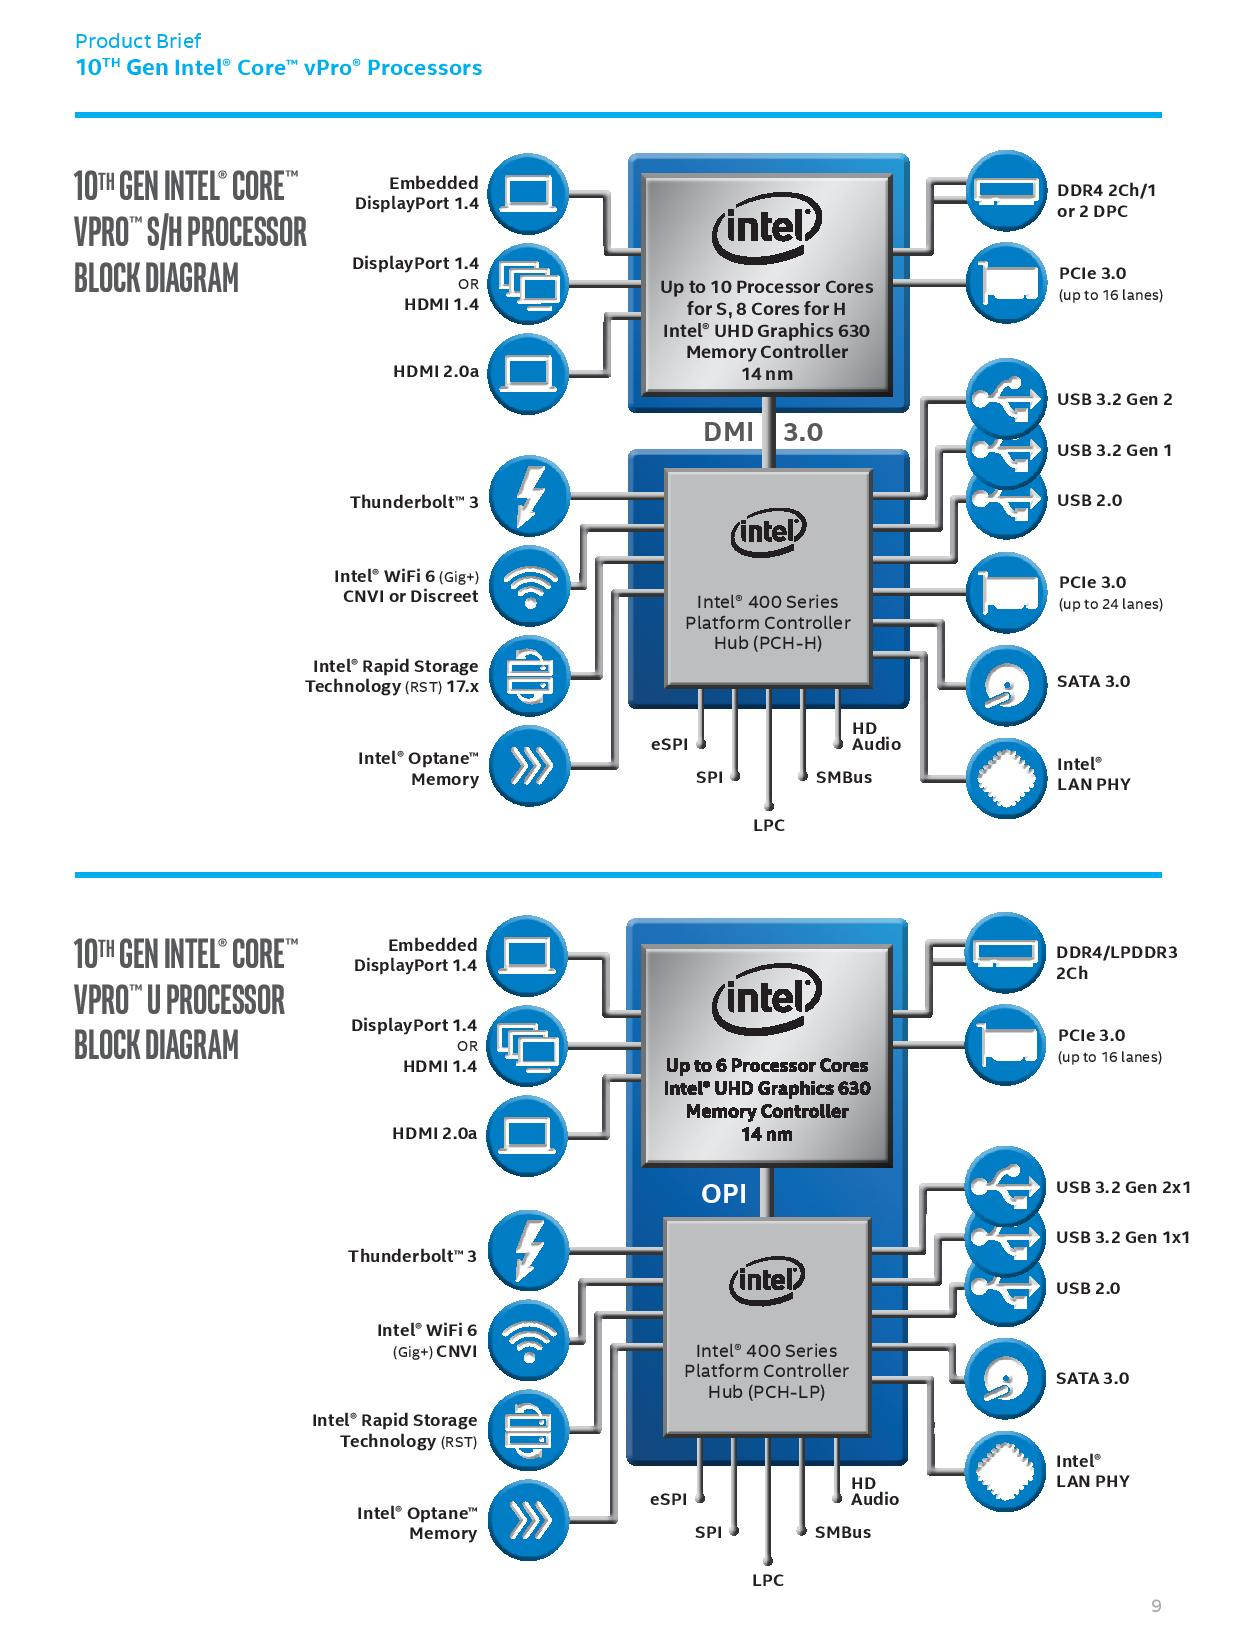 Intel Announces Xeon W-1200 Series and 10th-Gen Comet Lake vPro Processors